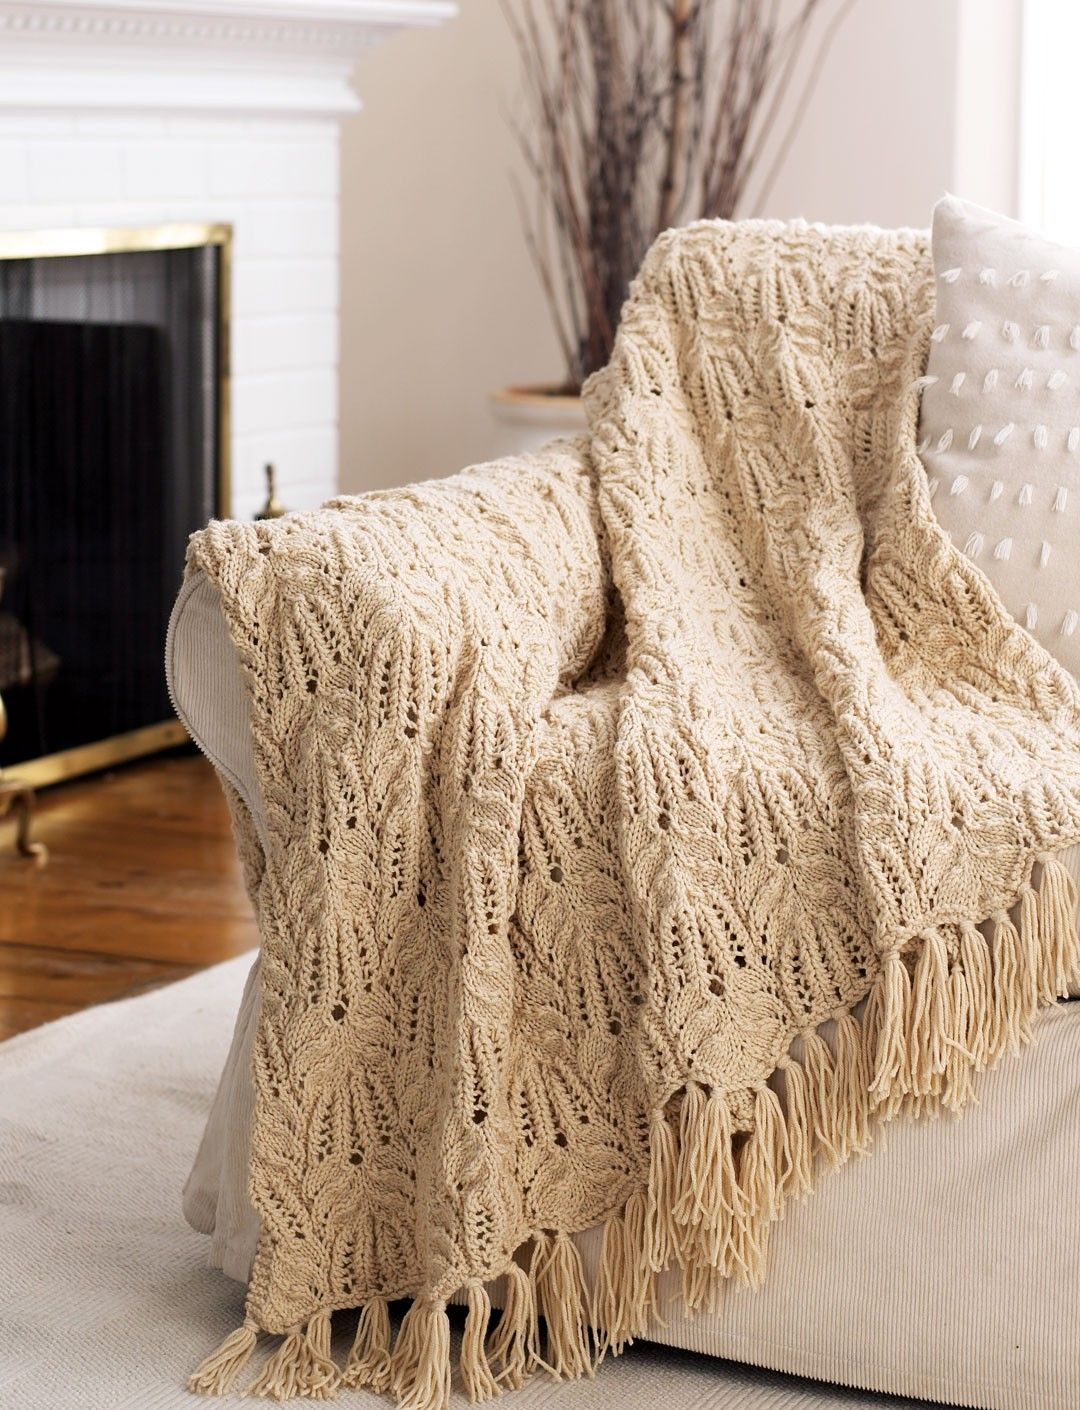 Yarnspirations.com - Bernat Lace and Cable Afghan - Patterns ...